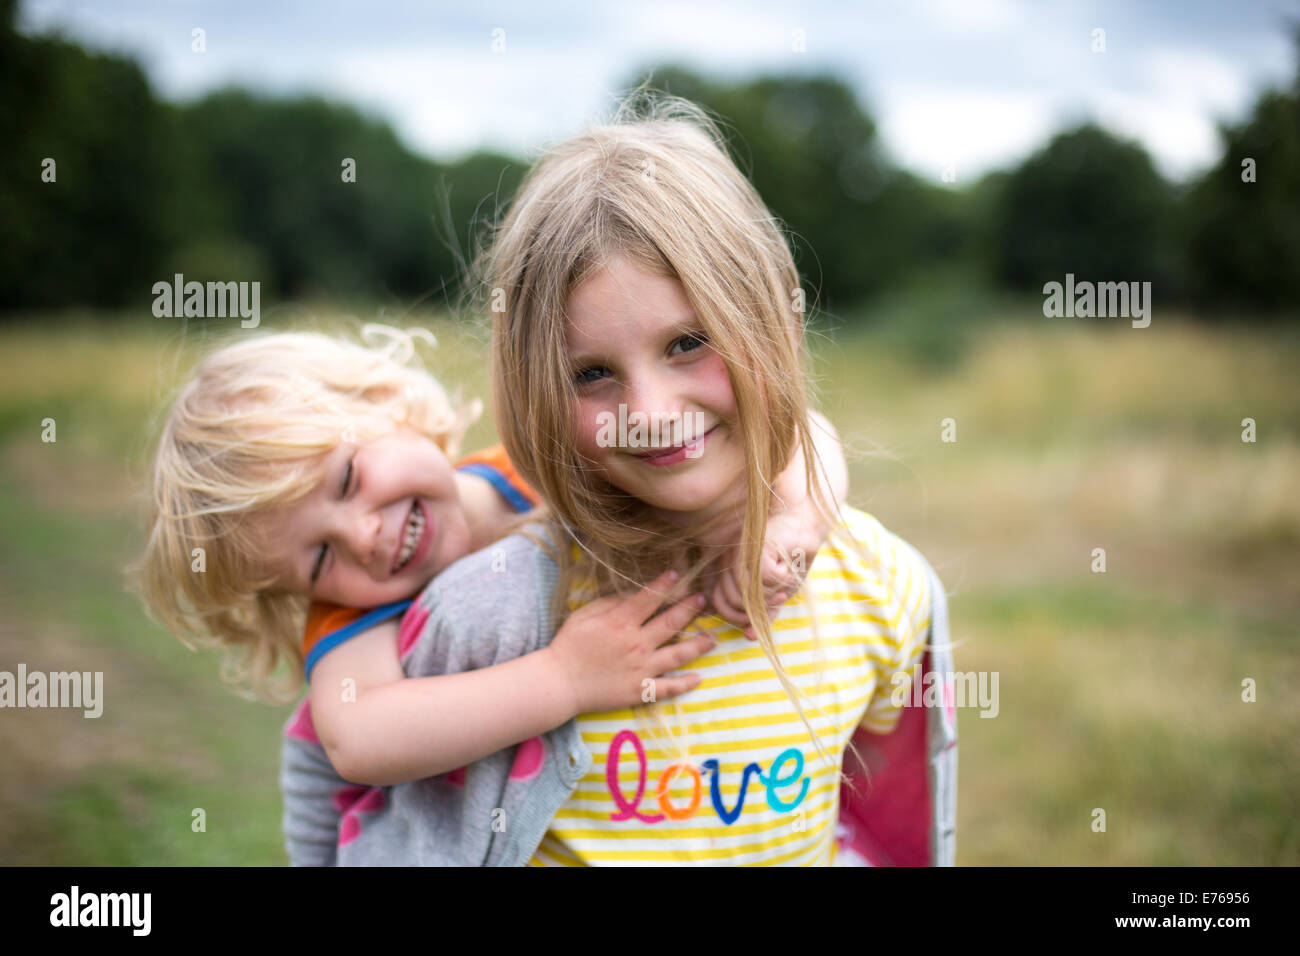 Siblings Outdoors - Stock Image